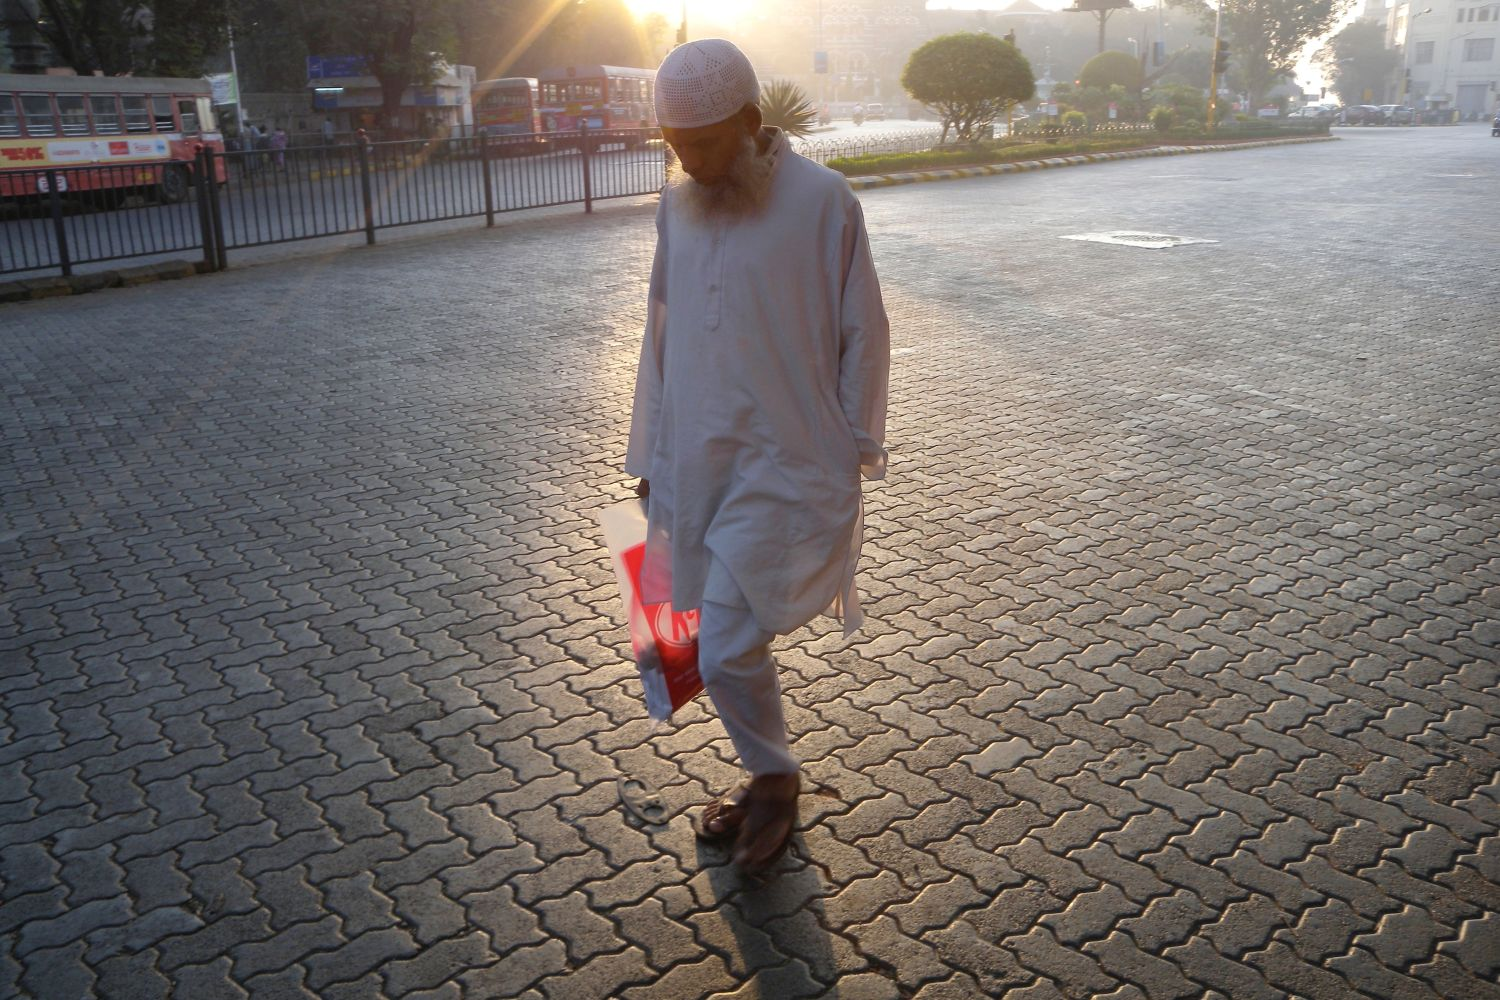 Mumbai - Bombay | Indian muslim in the street at early morning | ©sandrine cohen